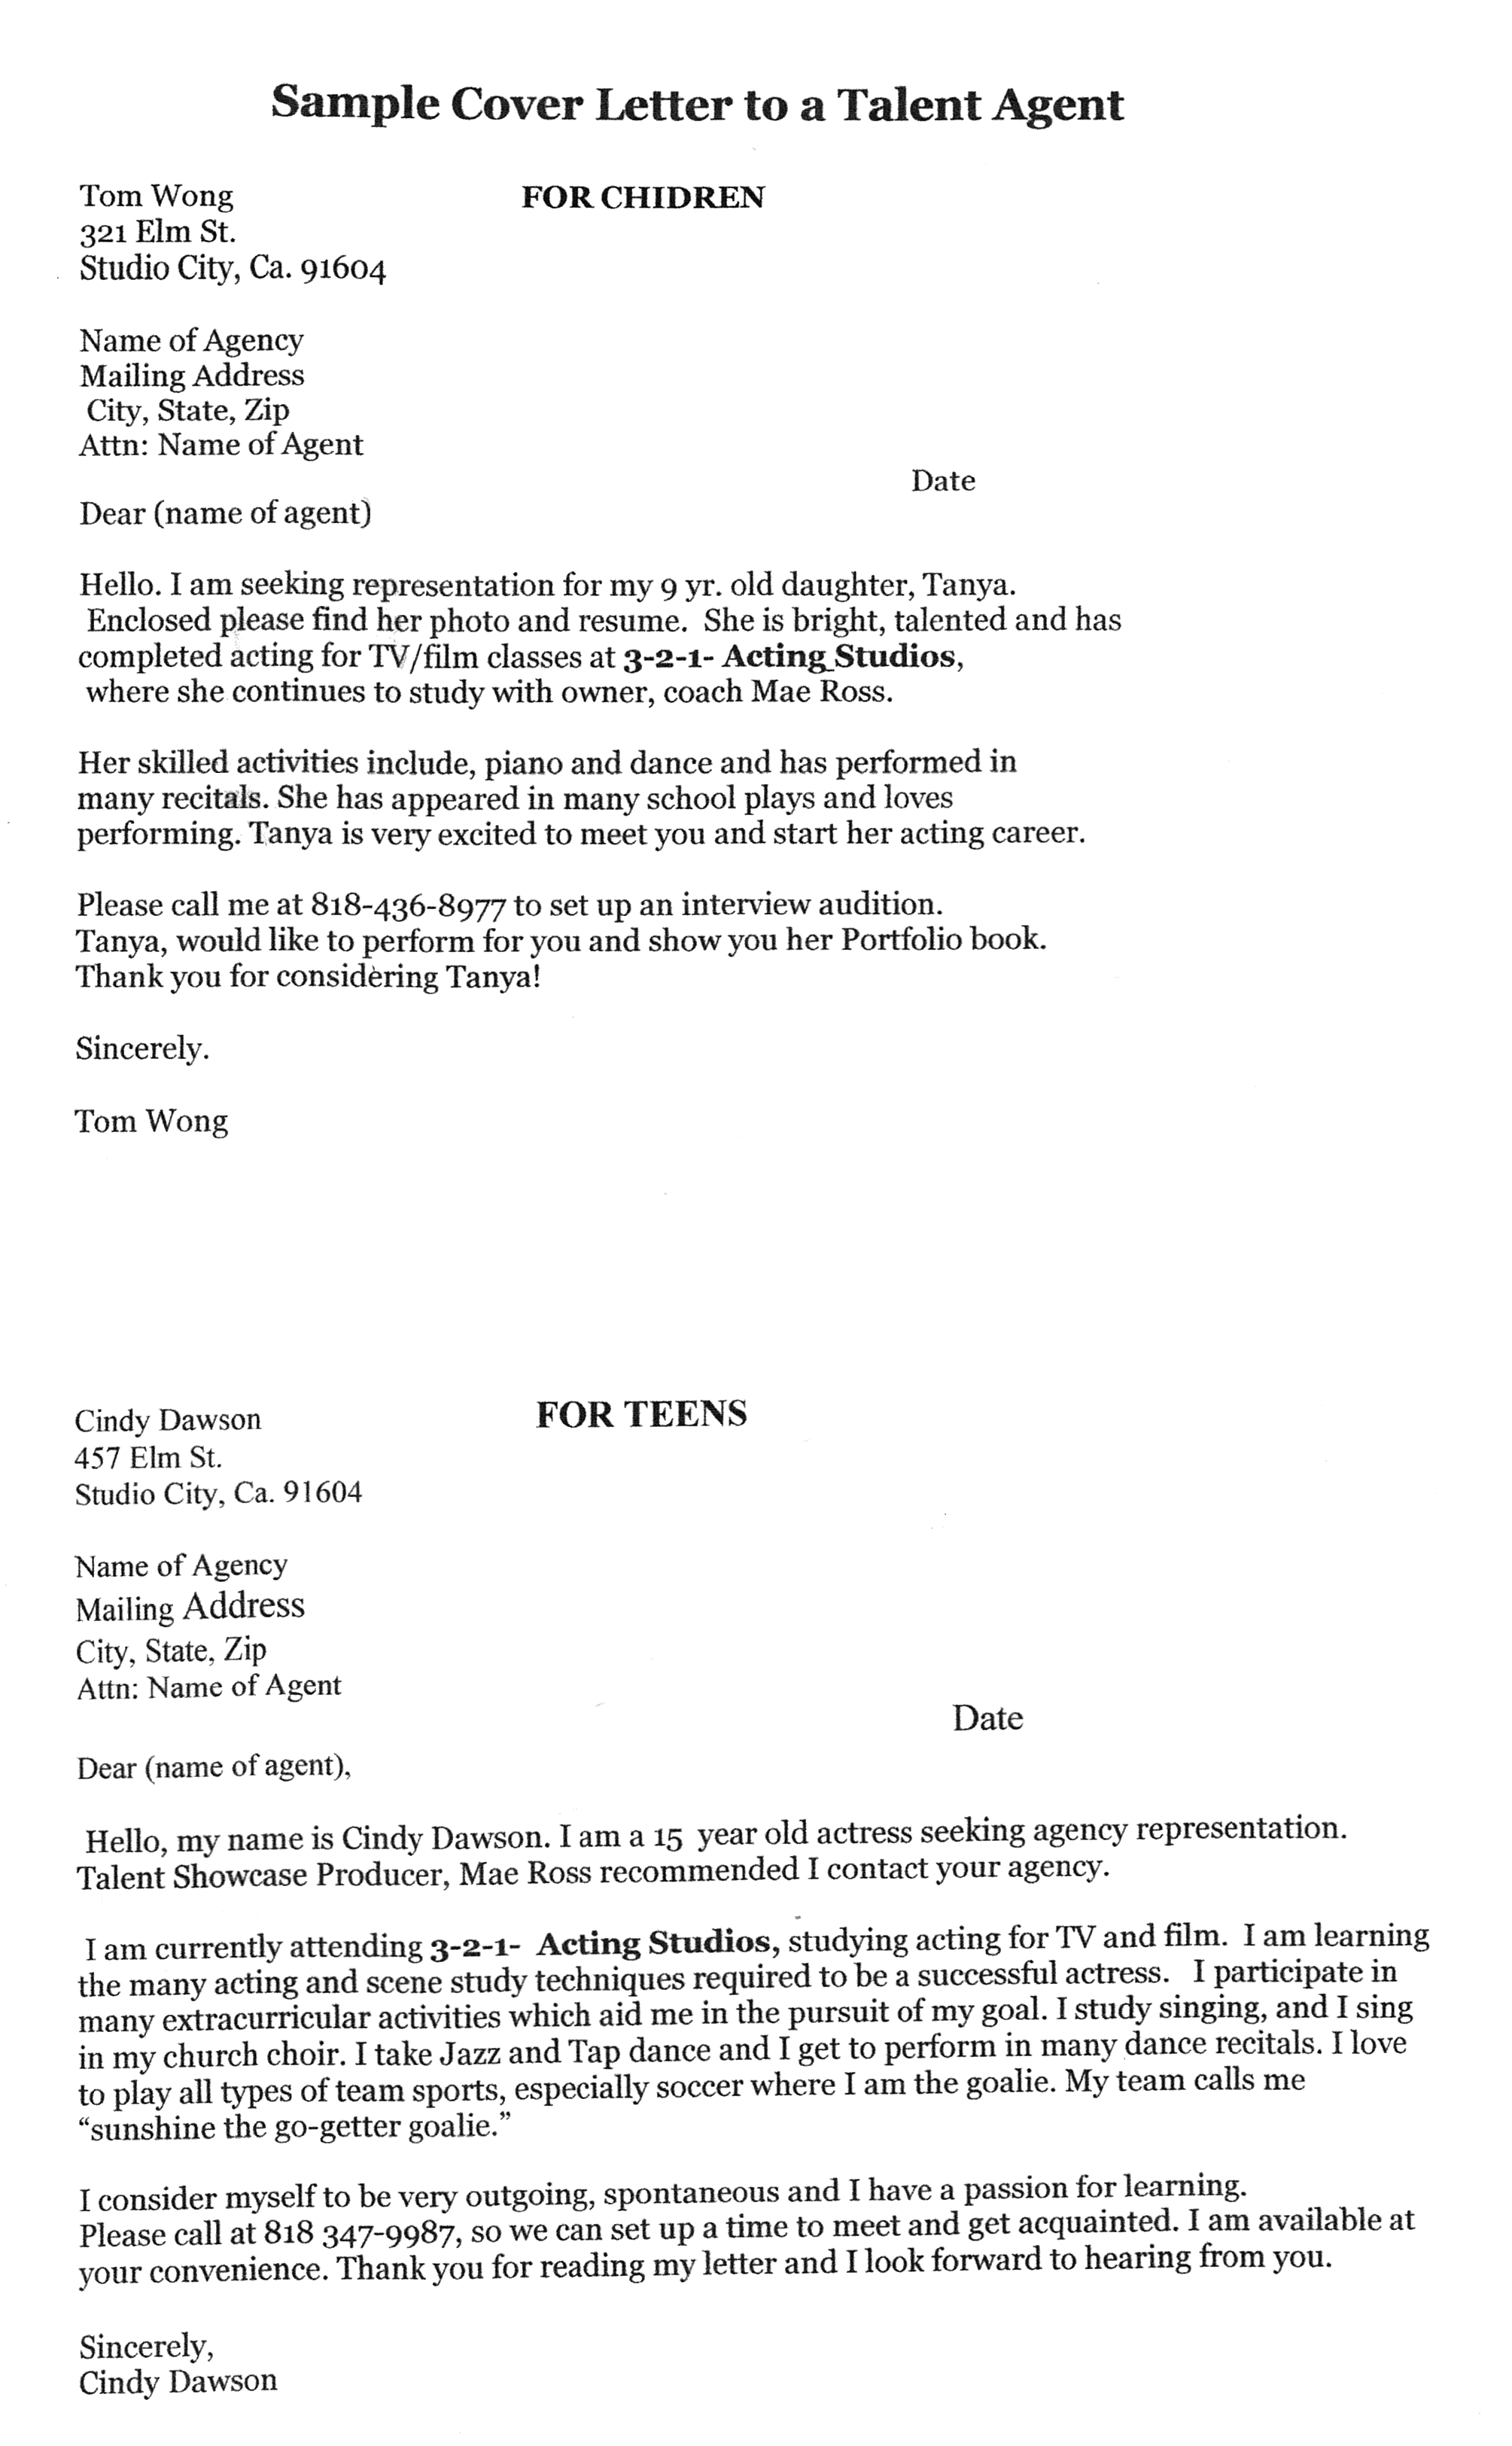 Sample Actress Cover Letter  EczaSolinfCo